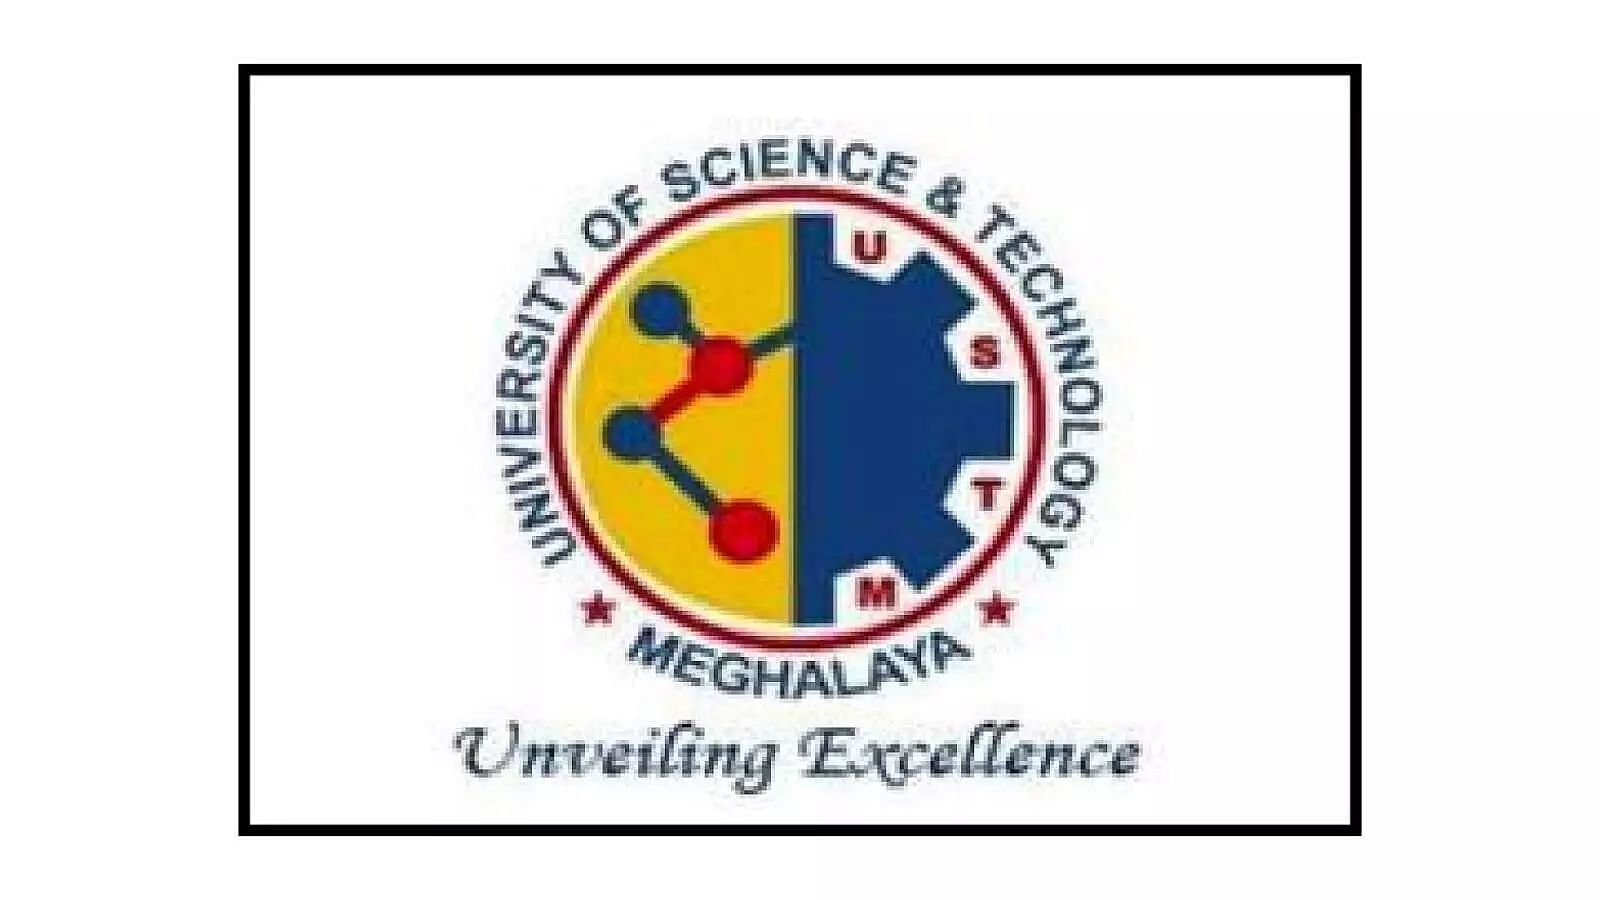 USTM Recruitment 2021- Faculty Positions Vacancy, Job Openings